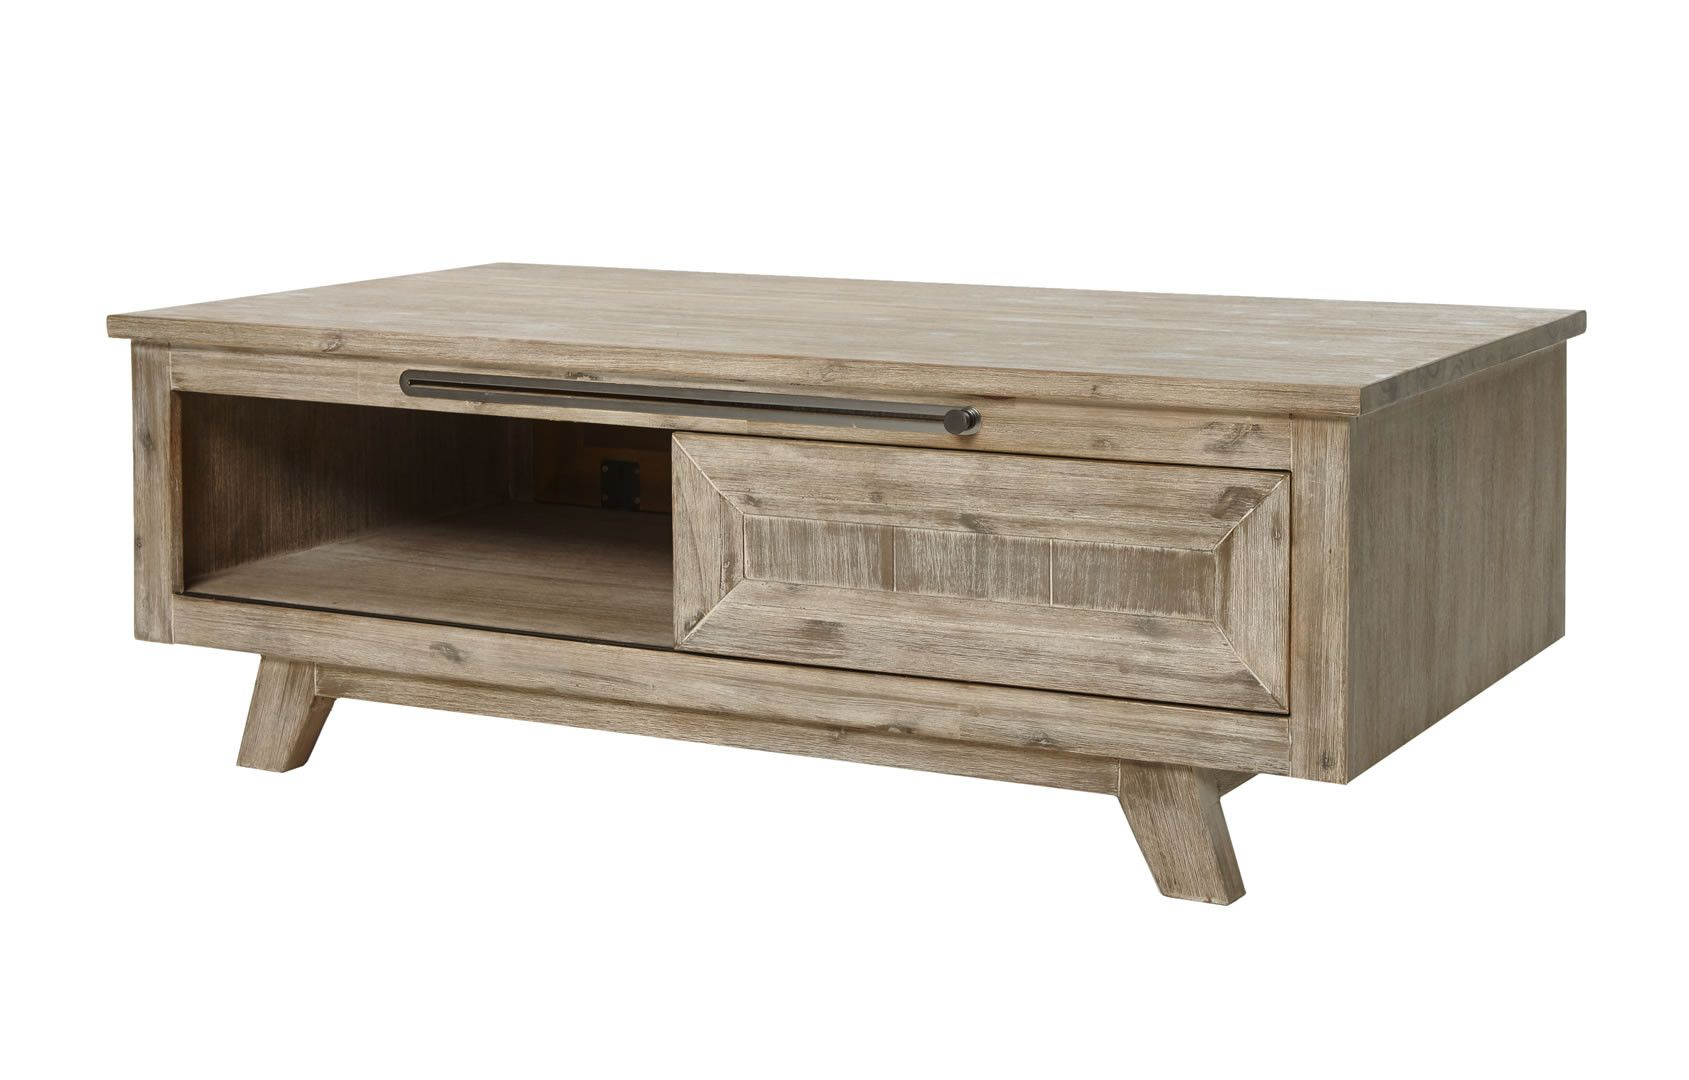 Table Basse En Bois Made In Belgium Table Basse Bois Massif Style Rustique Chic Krabi